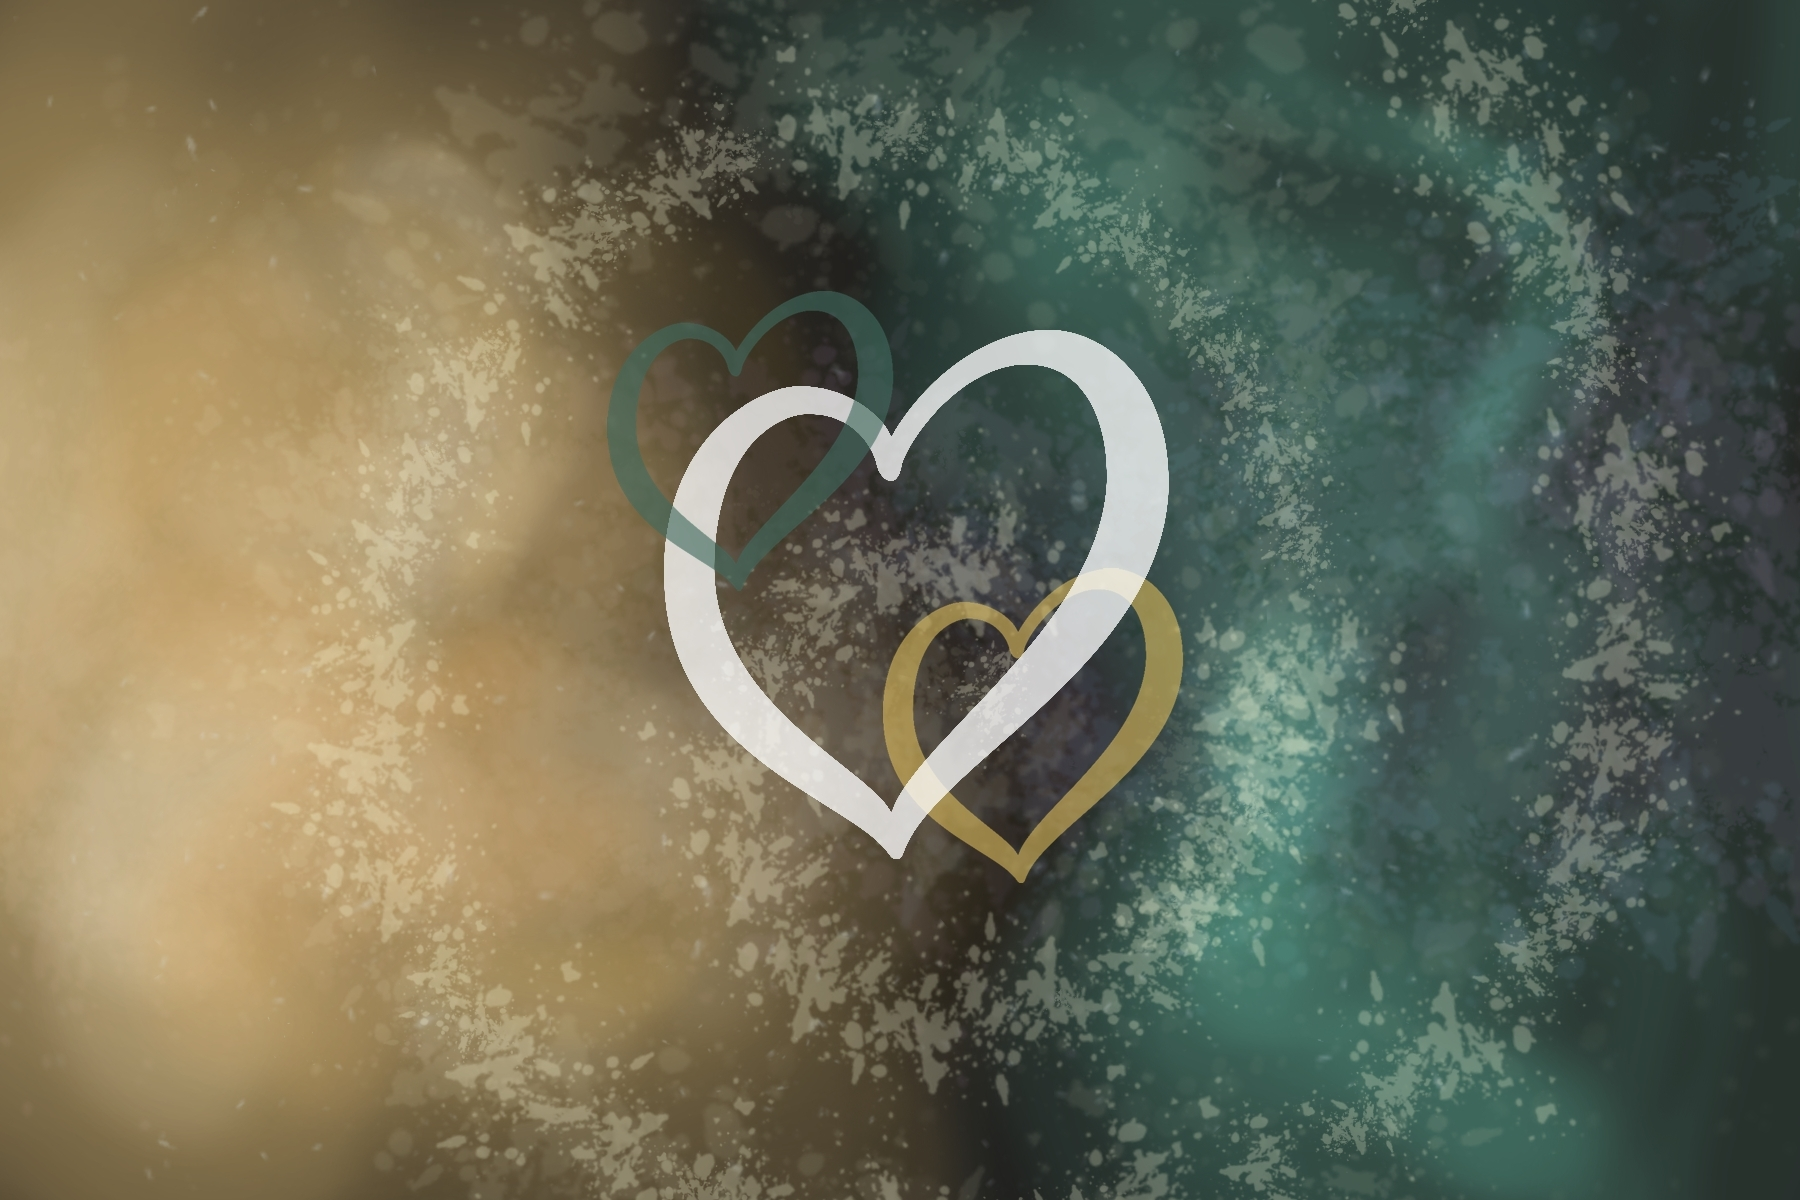 Illustration of heart outlines over a green and gold background, representing the Eurovision Song Contest